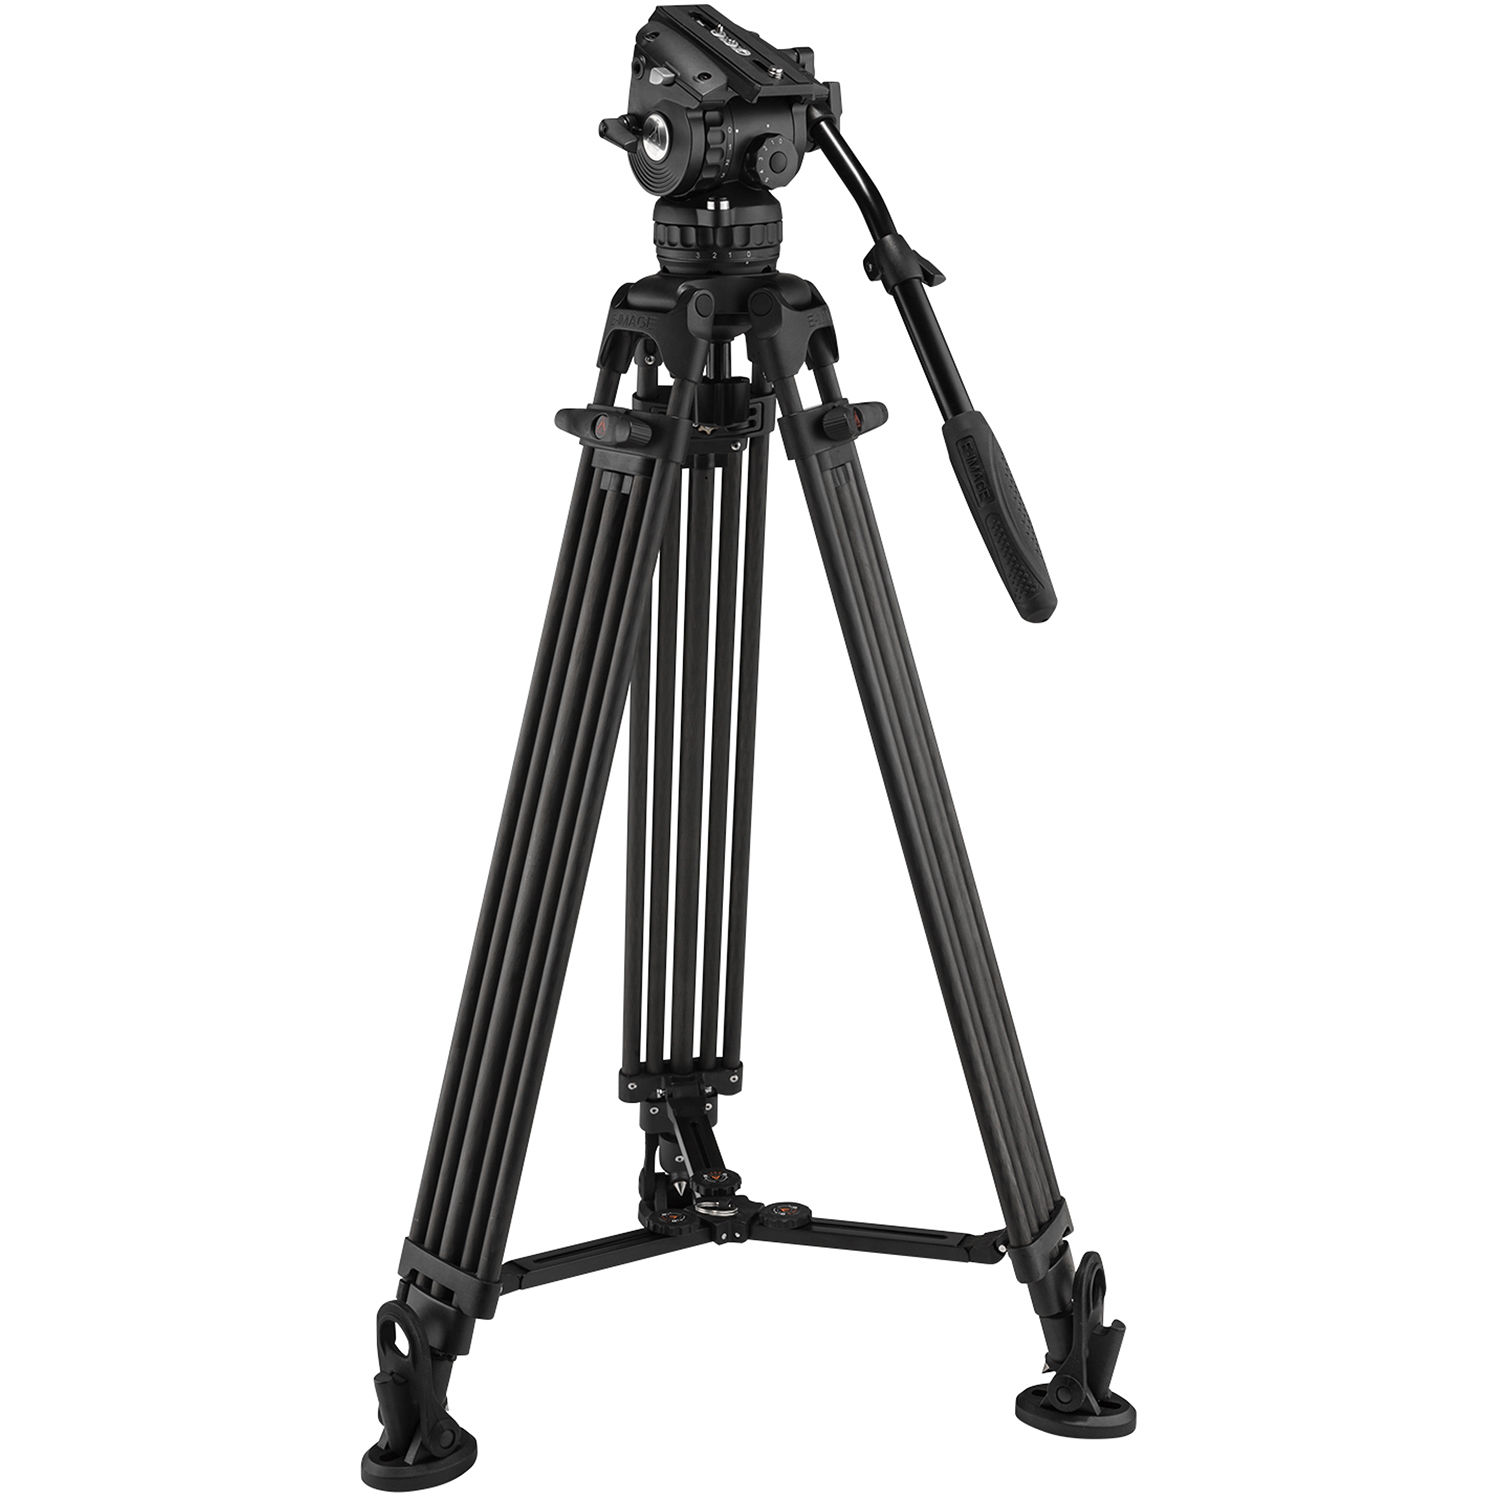 E Image Gh06 Head With 2 Stage Carbon Fiber Tripod Legs Eg06c2 Electronic Printed Circuit Board Technology Style Against